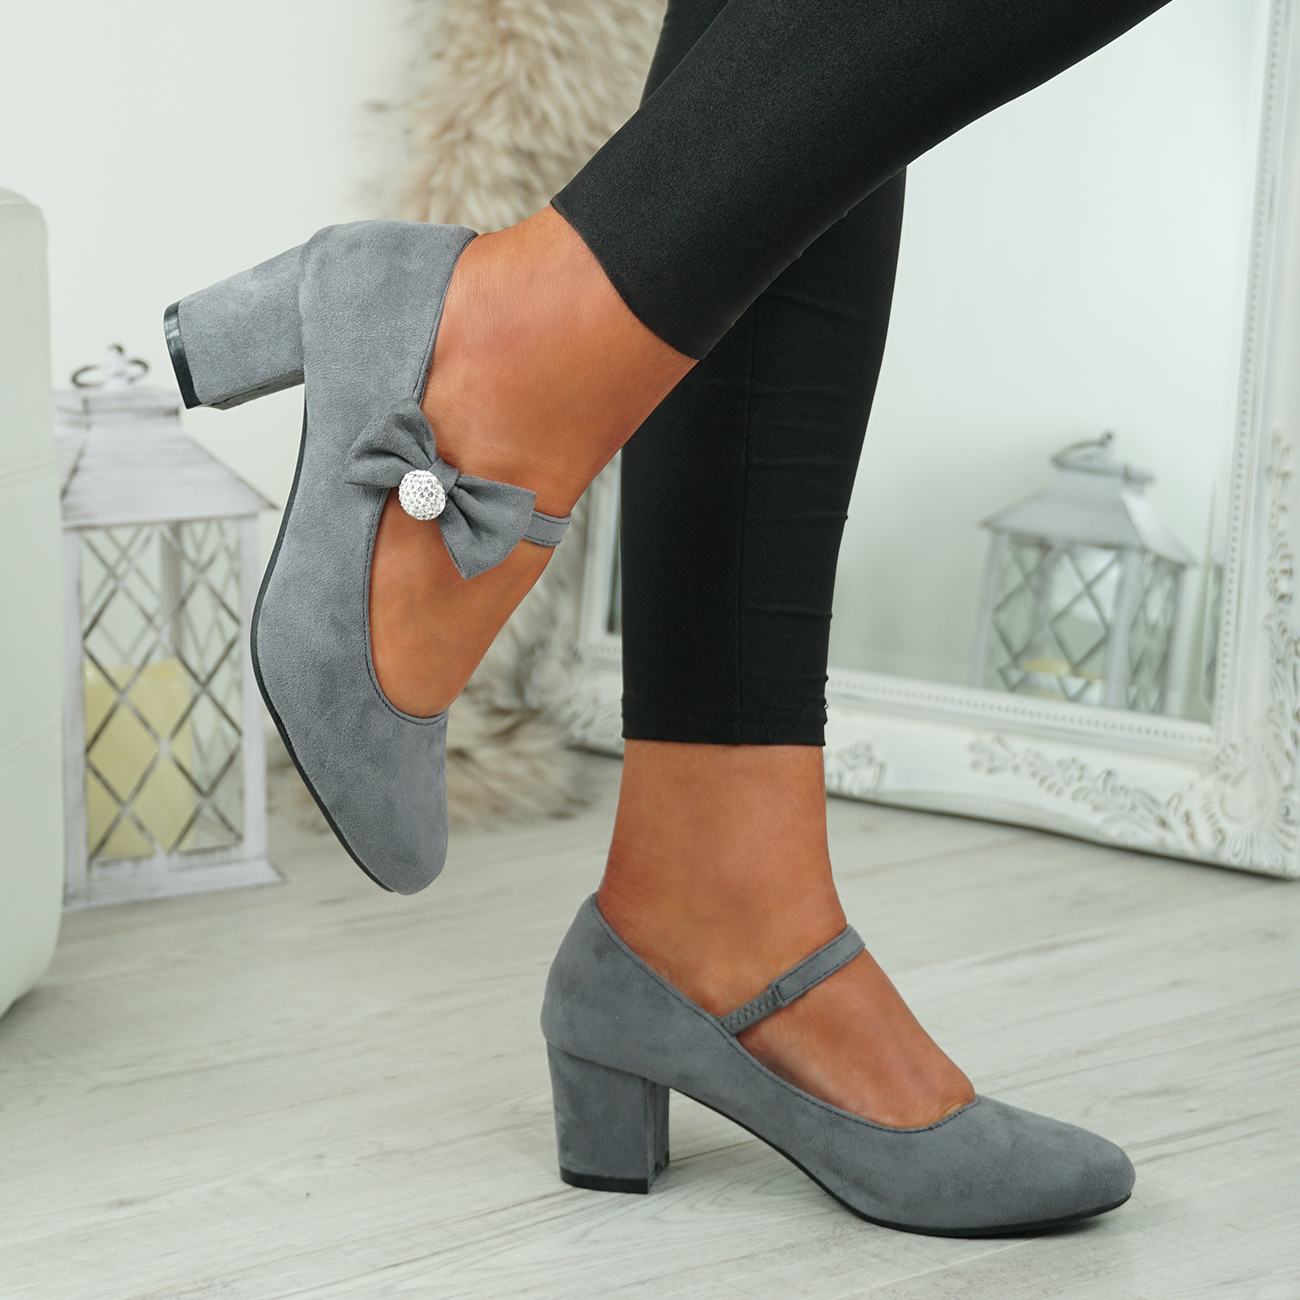 NEW-WOMENS-BLOCK-HEEL-PUMPS-BOW-BUCKLE-STRAP-ROUNDED-TOE-CASUAL-SHOES-SIZE thumbnail 18